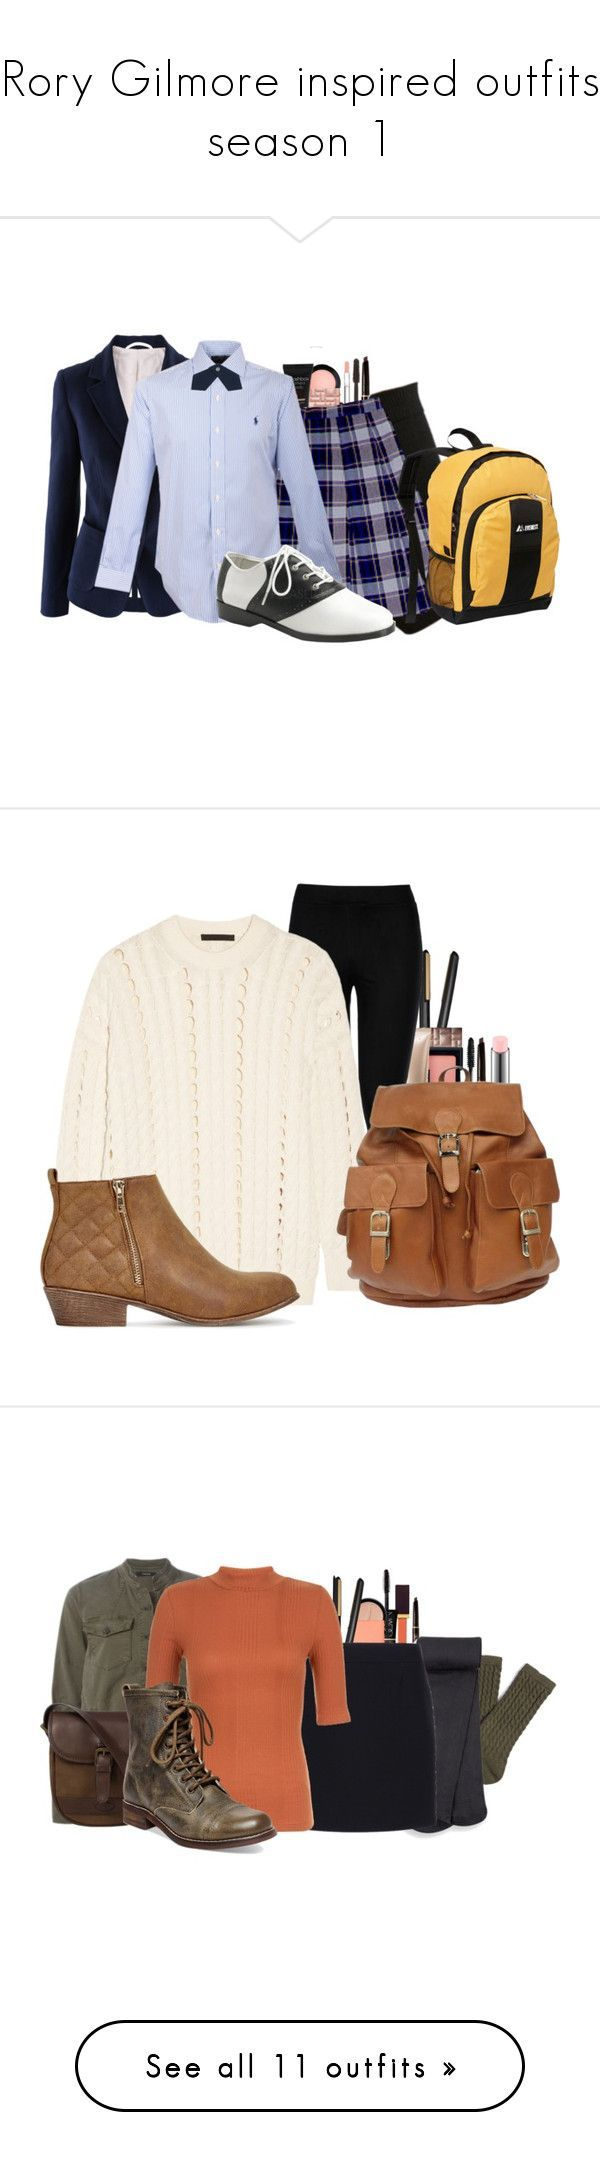 Rory Gilmore inspired outfits season 1 by cheyleexox ❤ liked on Polyvore featuring Stila, Christian Dior, Anastasia Beverly Hills, MAC Cosmetics, Bobbi Brown Cosmetics, Smashbox, Polo Ralph Lauren, Everest, Funtasma and GHD